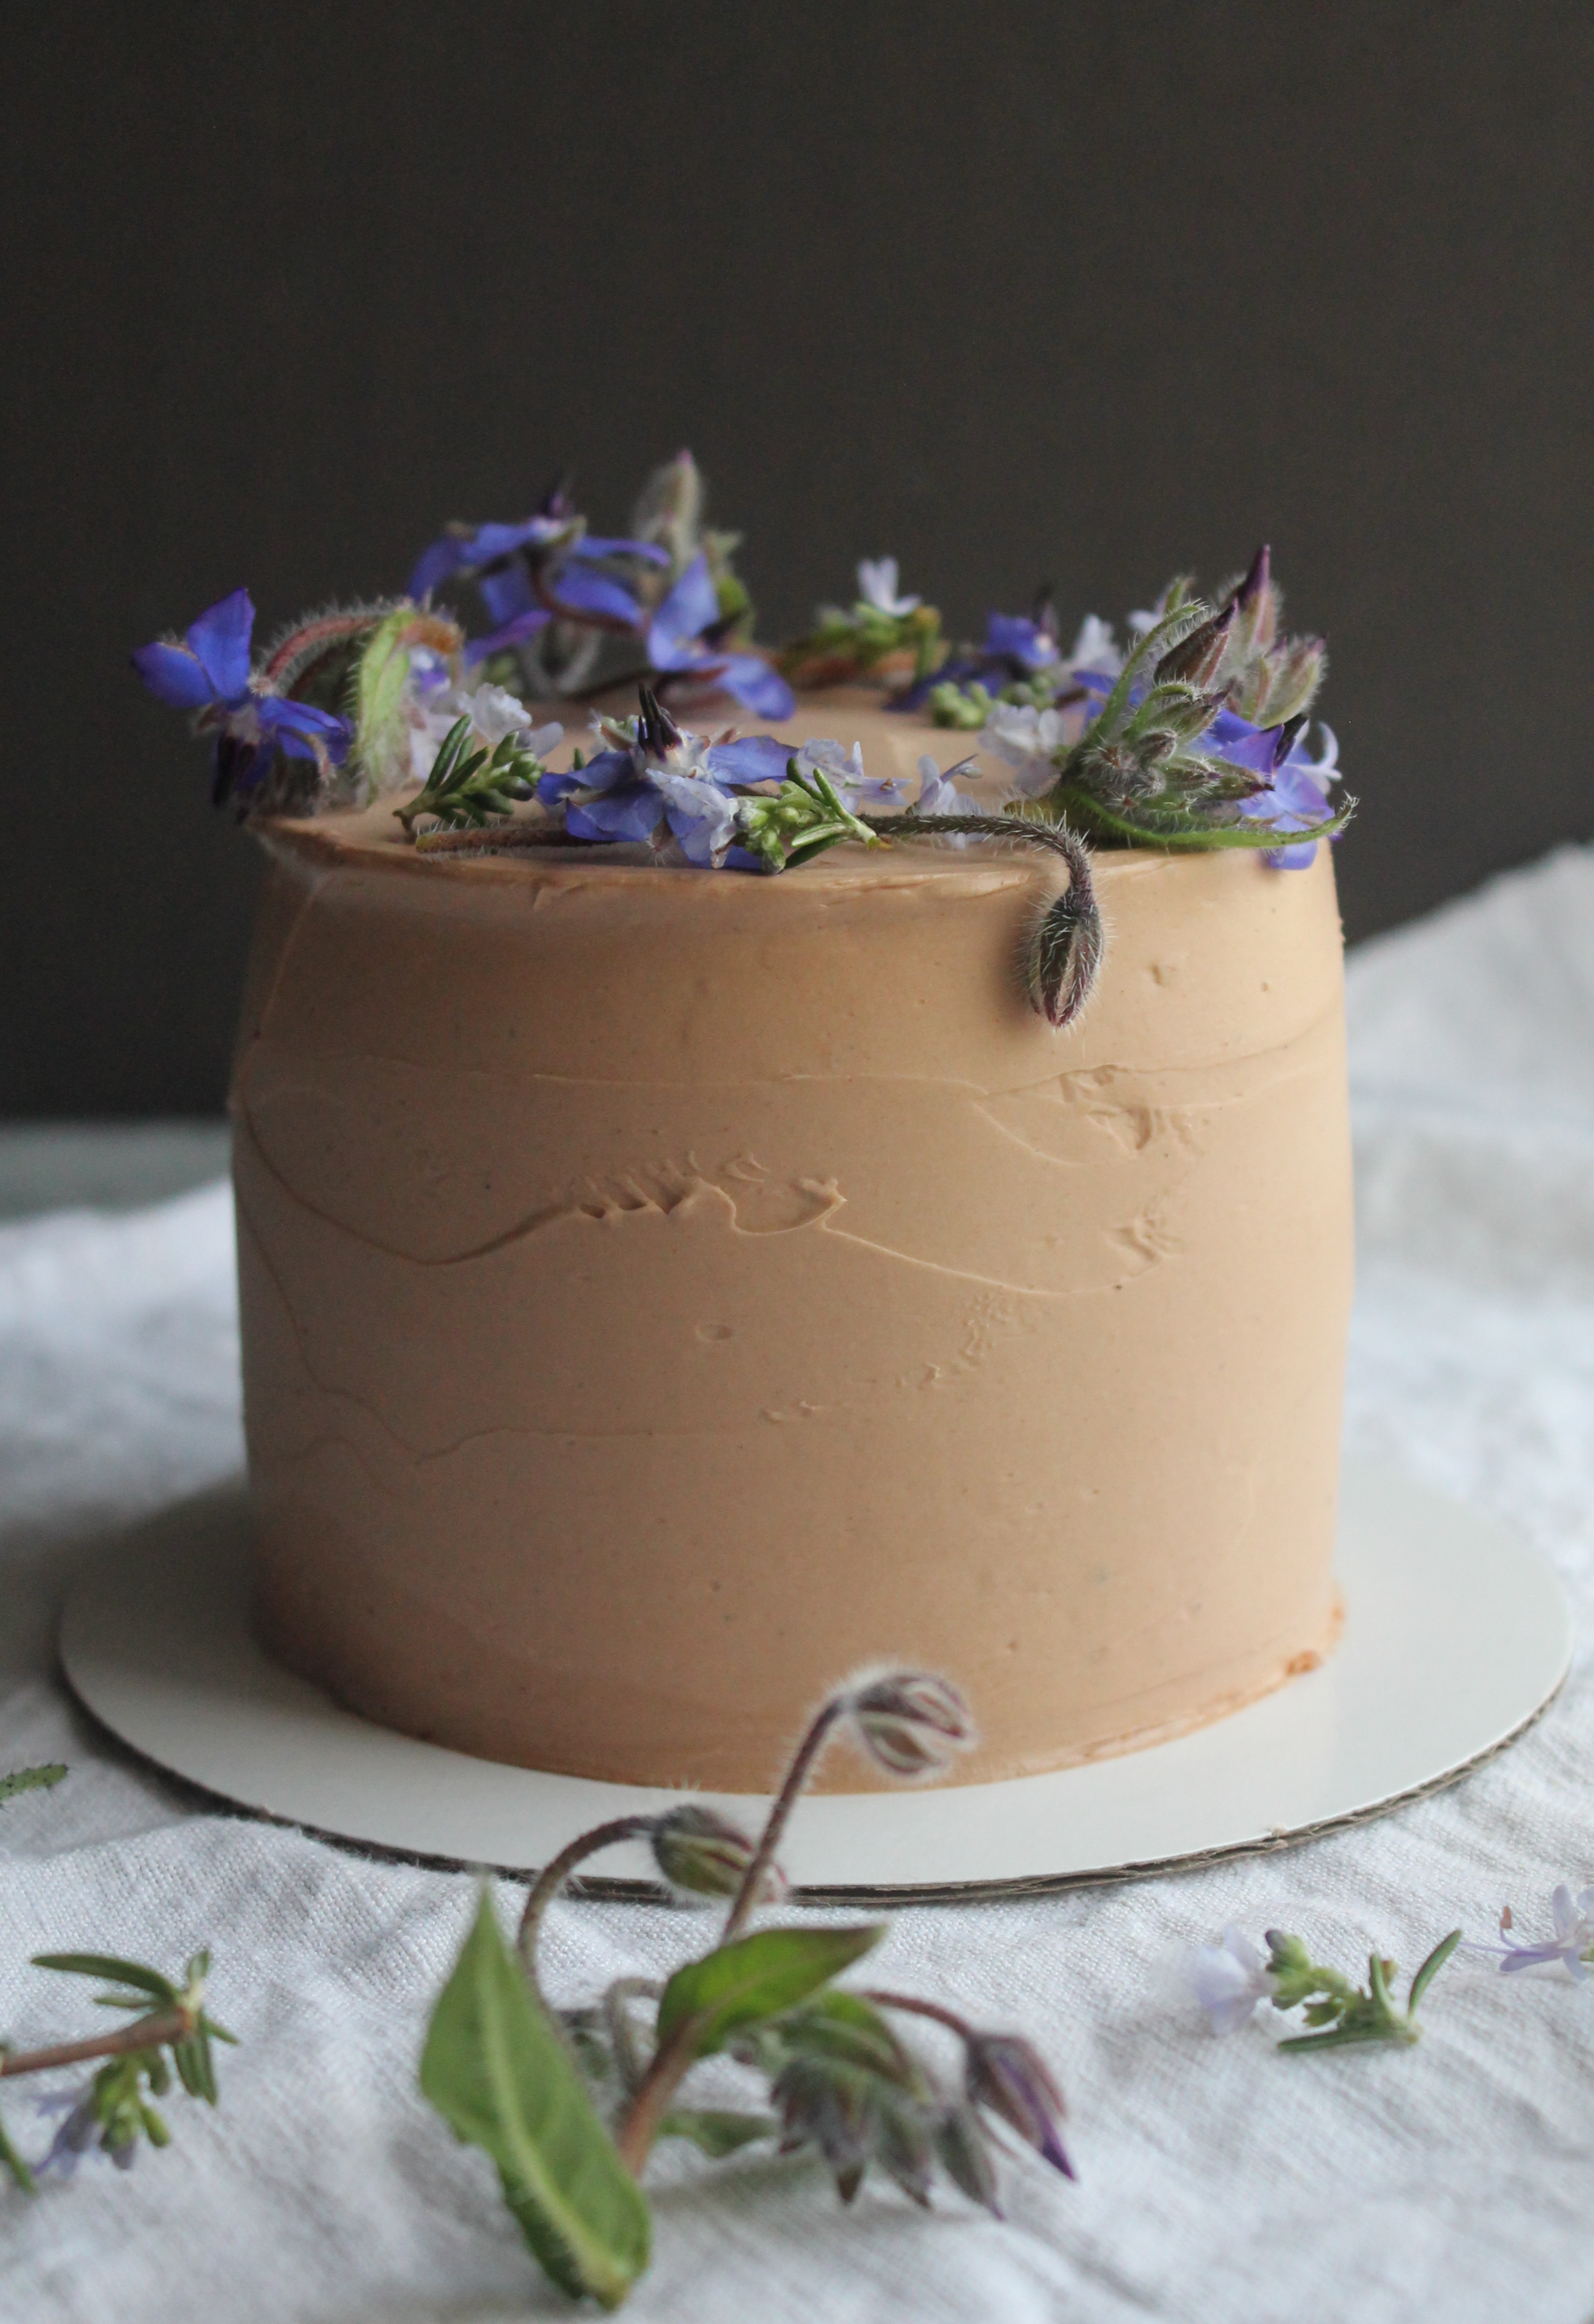 chocolate cake with edible borage and rosemary flower for a little boy's birthday.